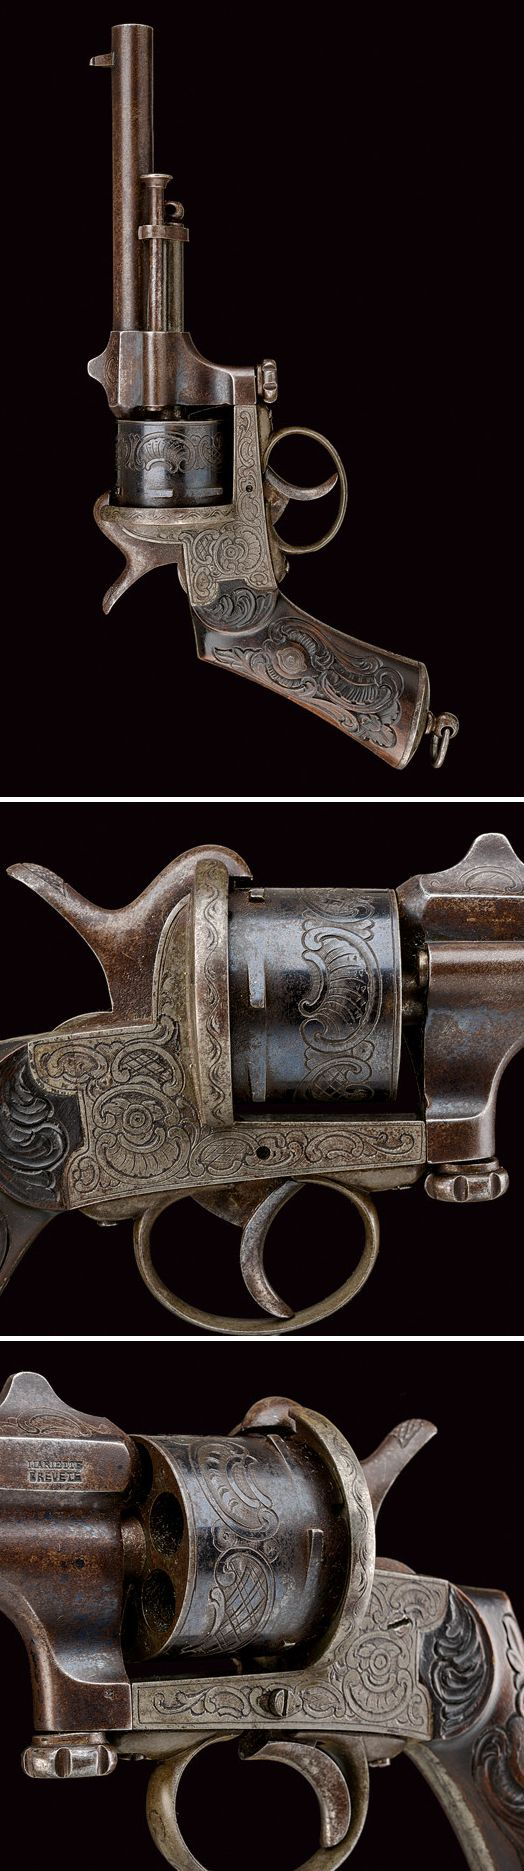 A Marietta pin-fire revolver: provenance: Belgium dating: third quarter of the 19th Century